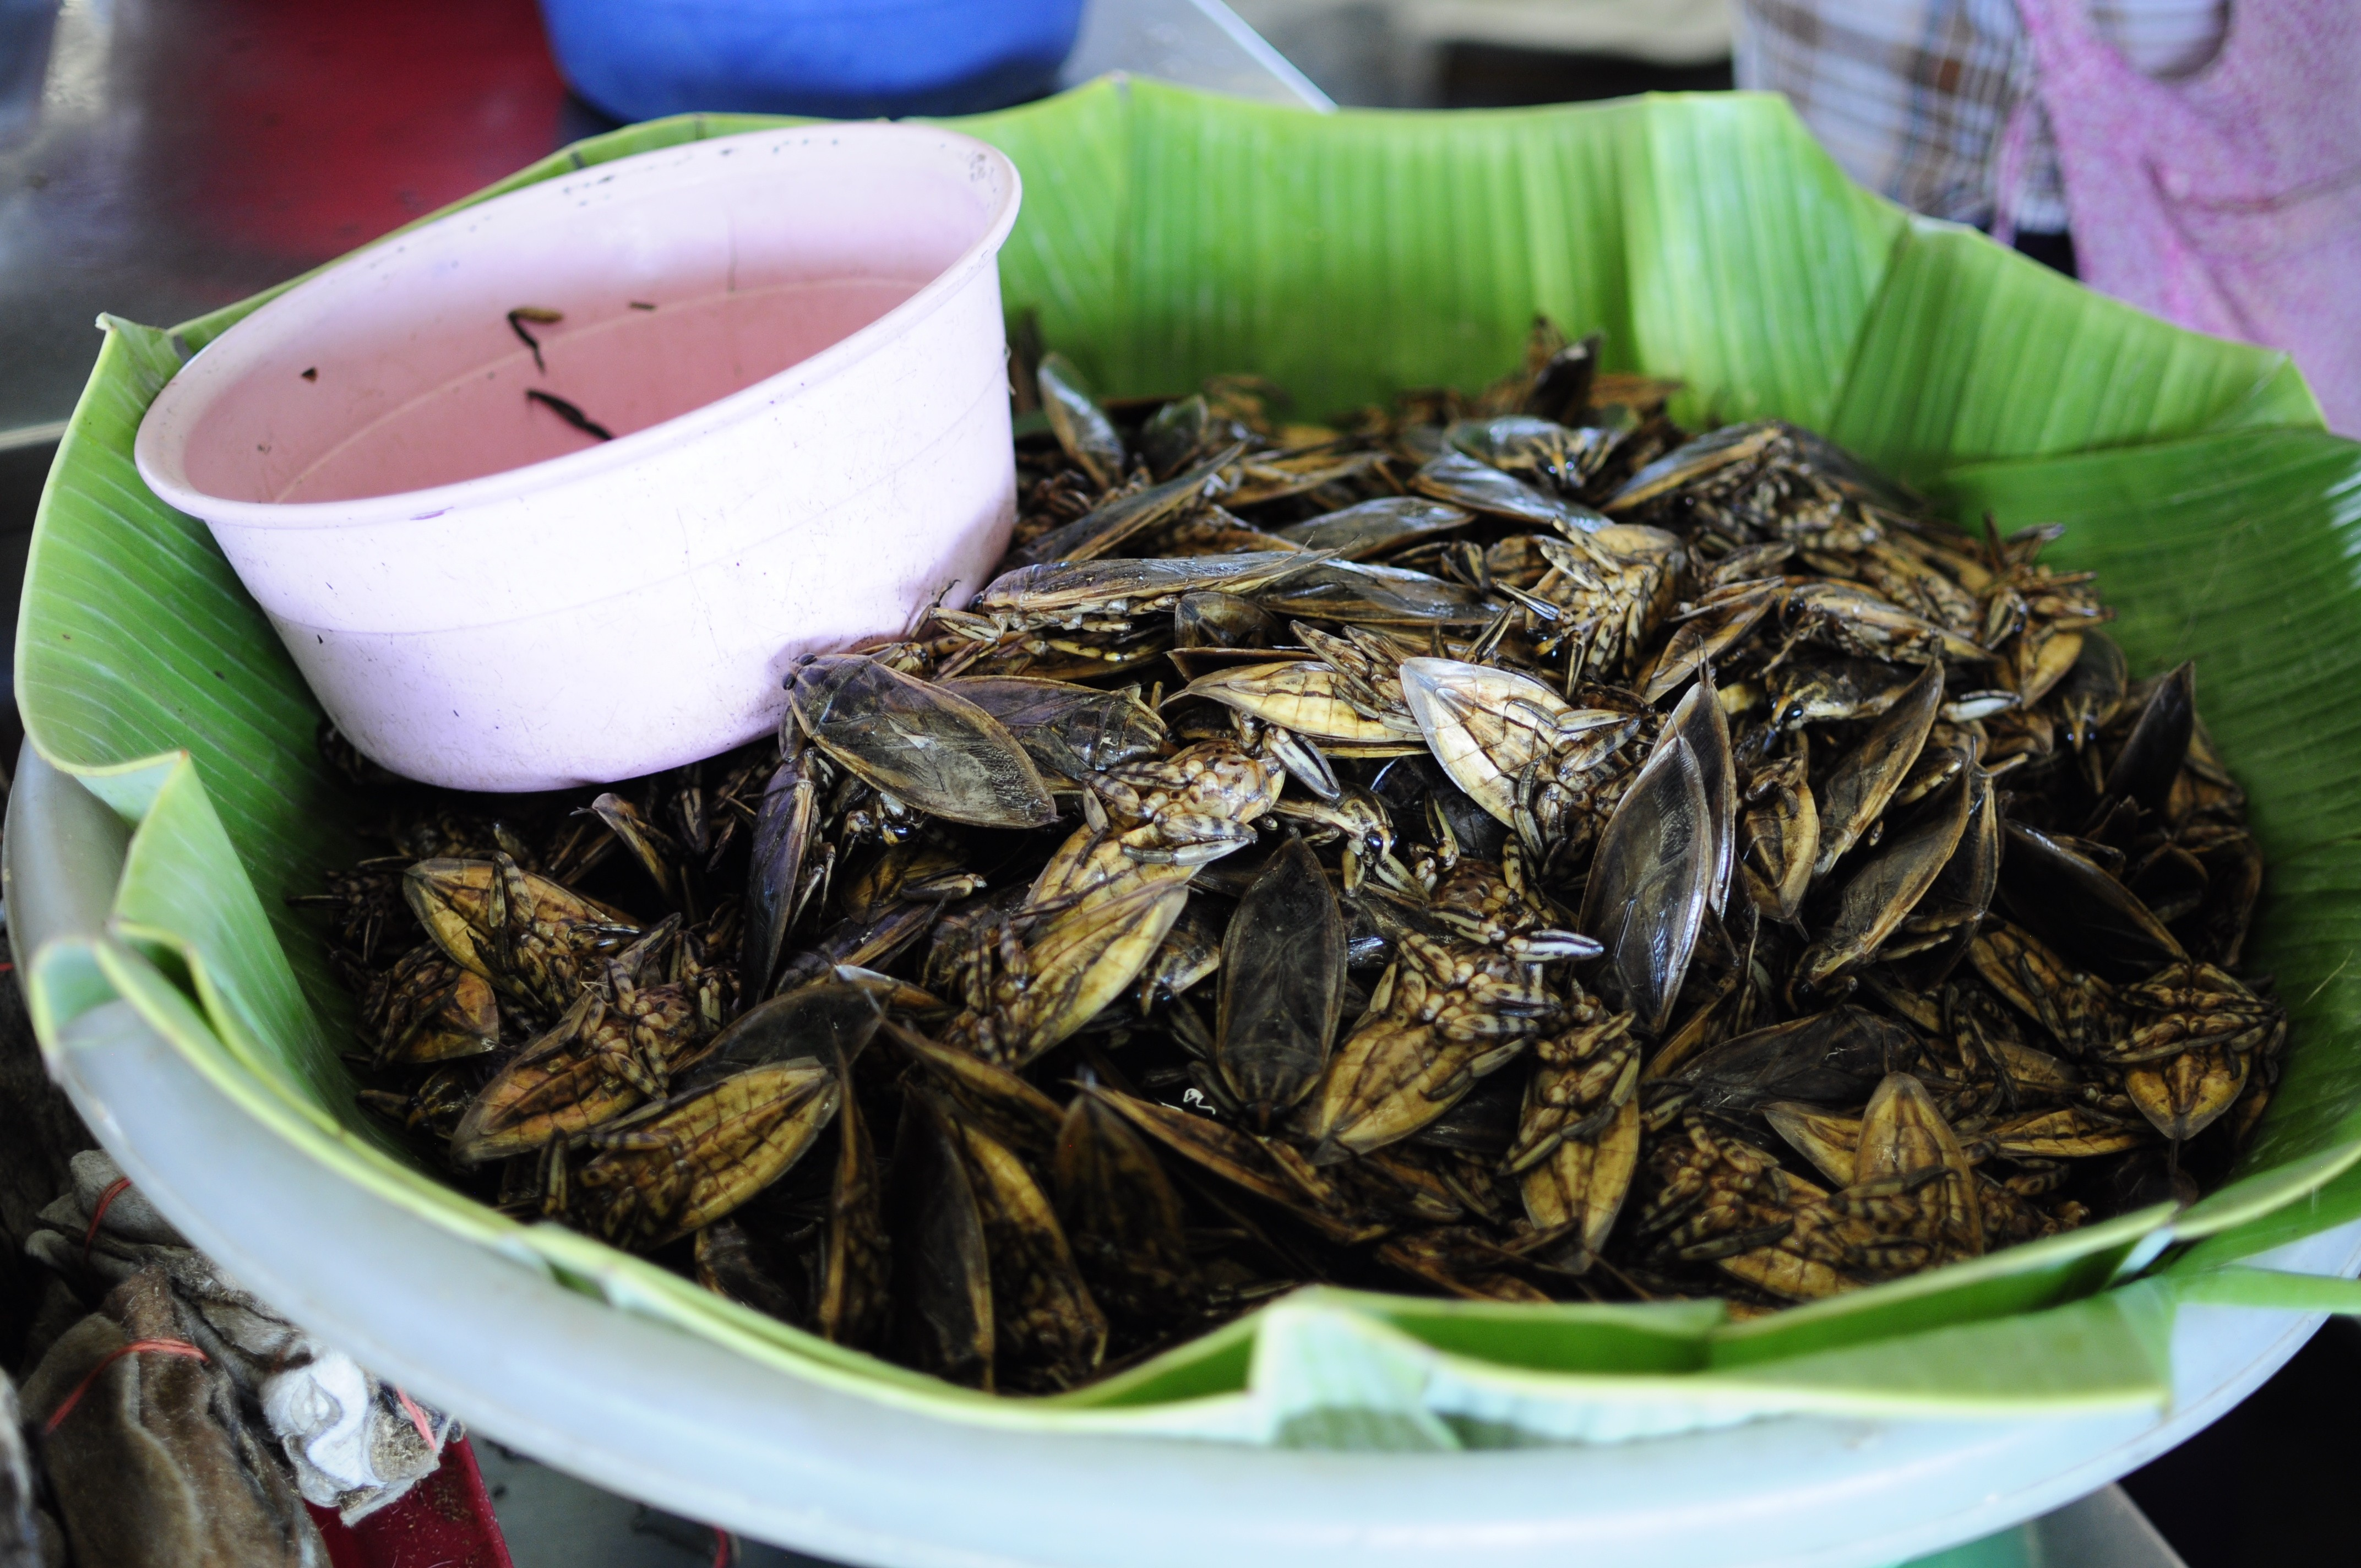 Giant water bugs for sale at the Talaad Thai market